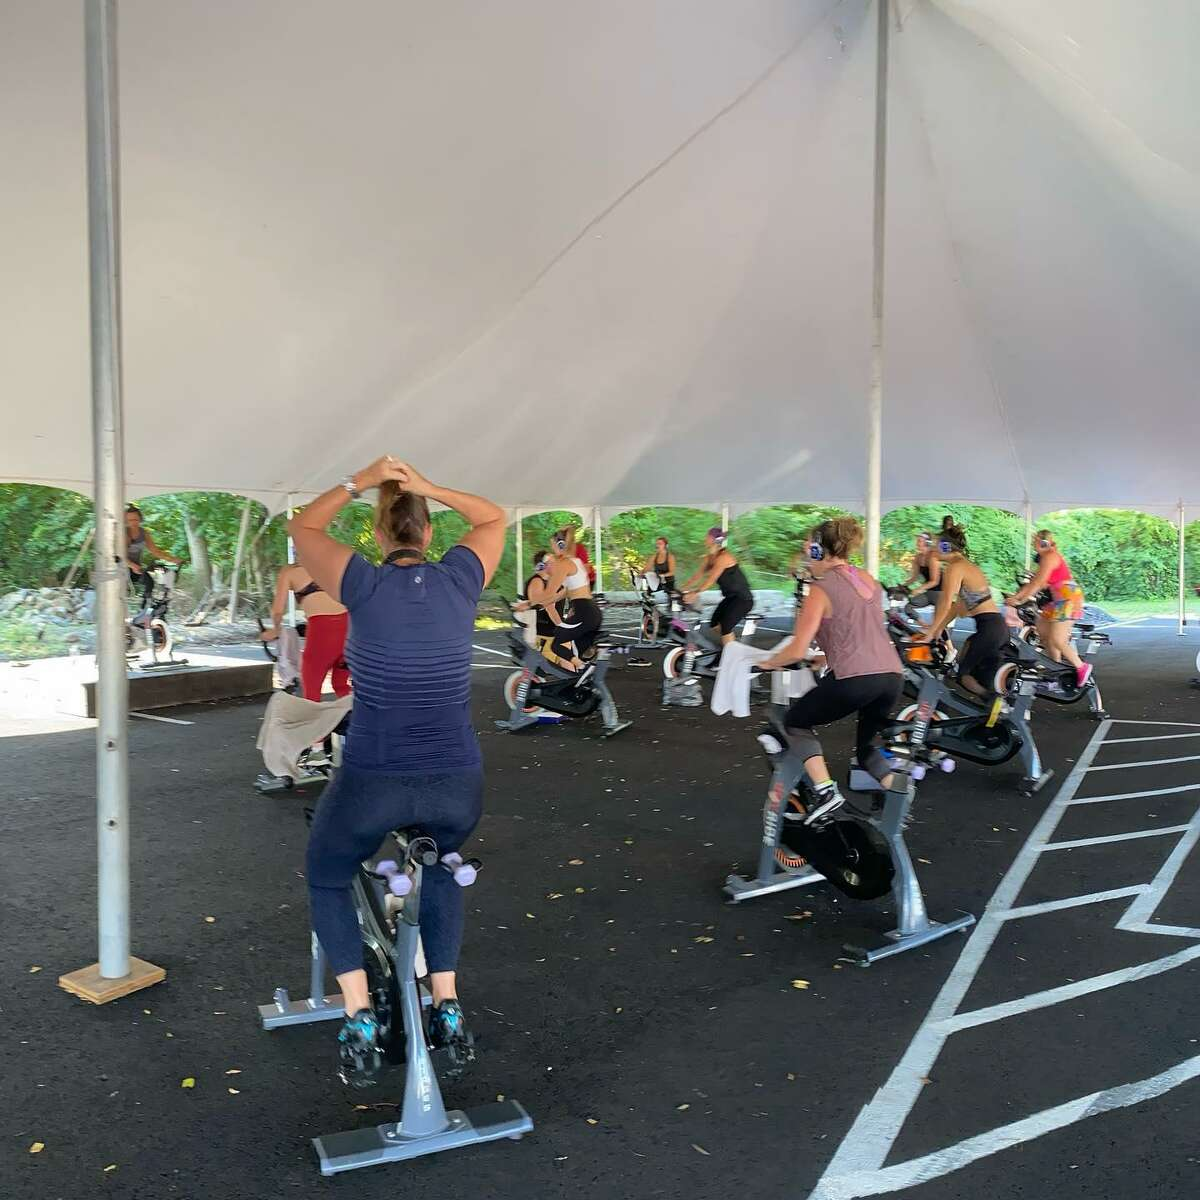 Joyride is partnering with The Corbin District to offer outdoor cycling classes under a tent in Darien.